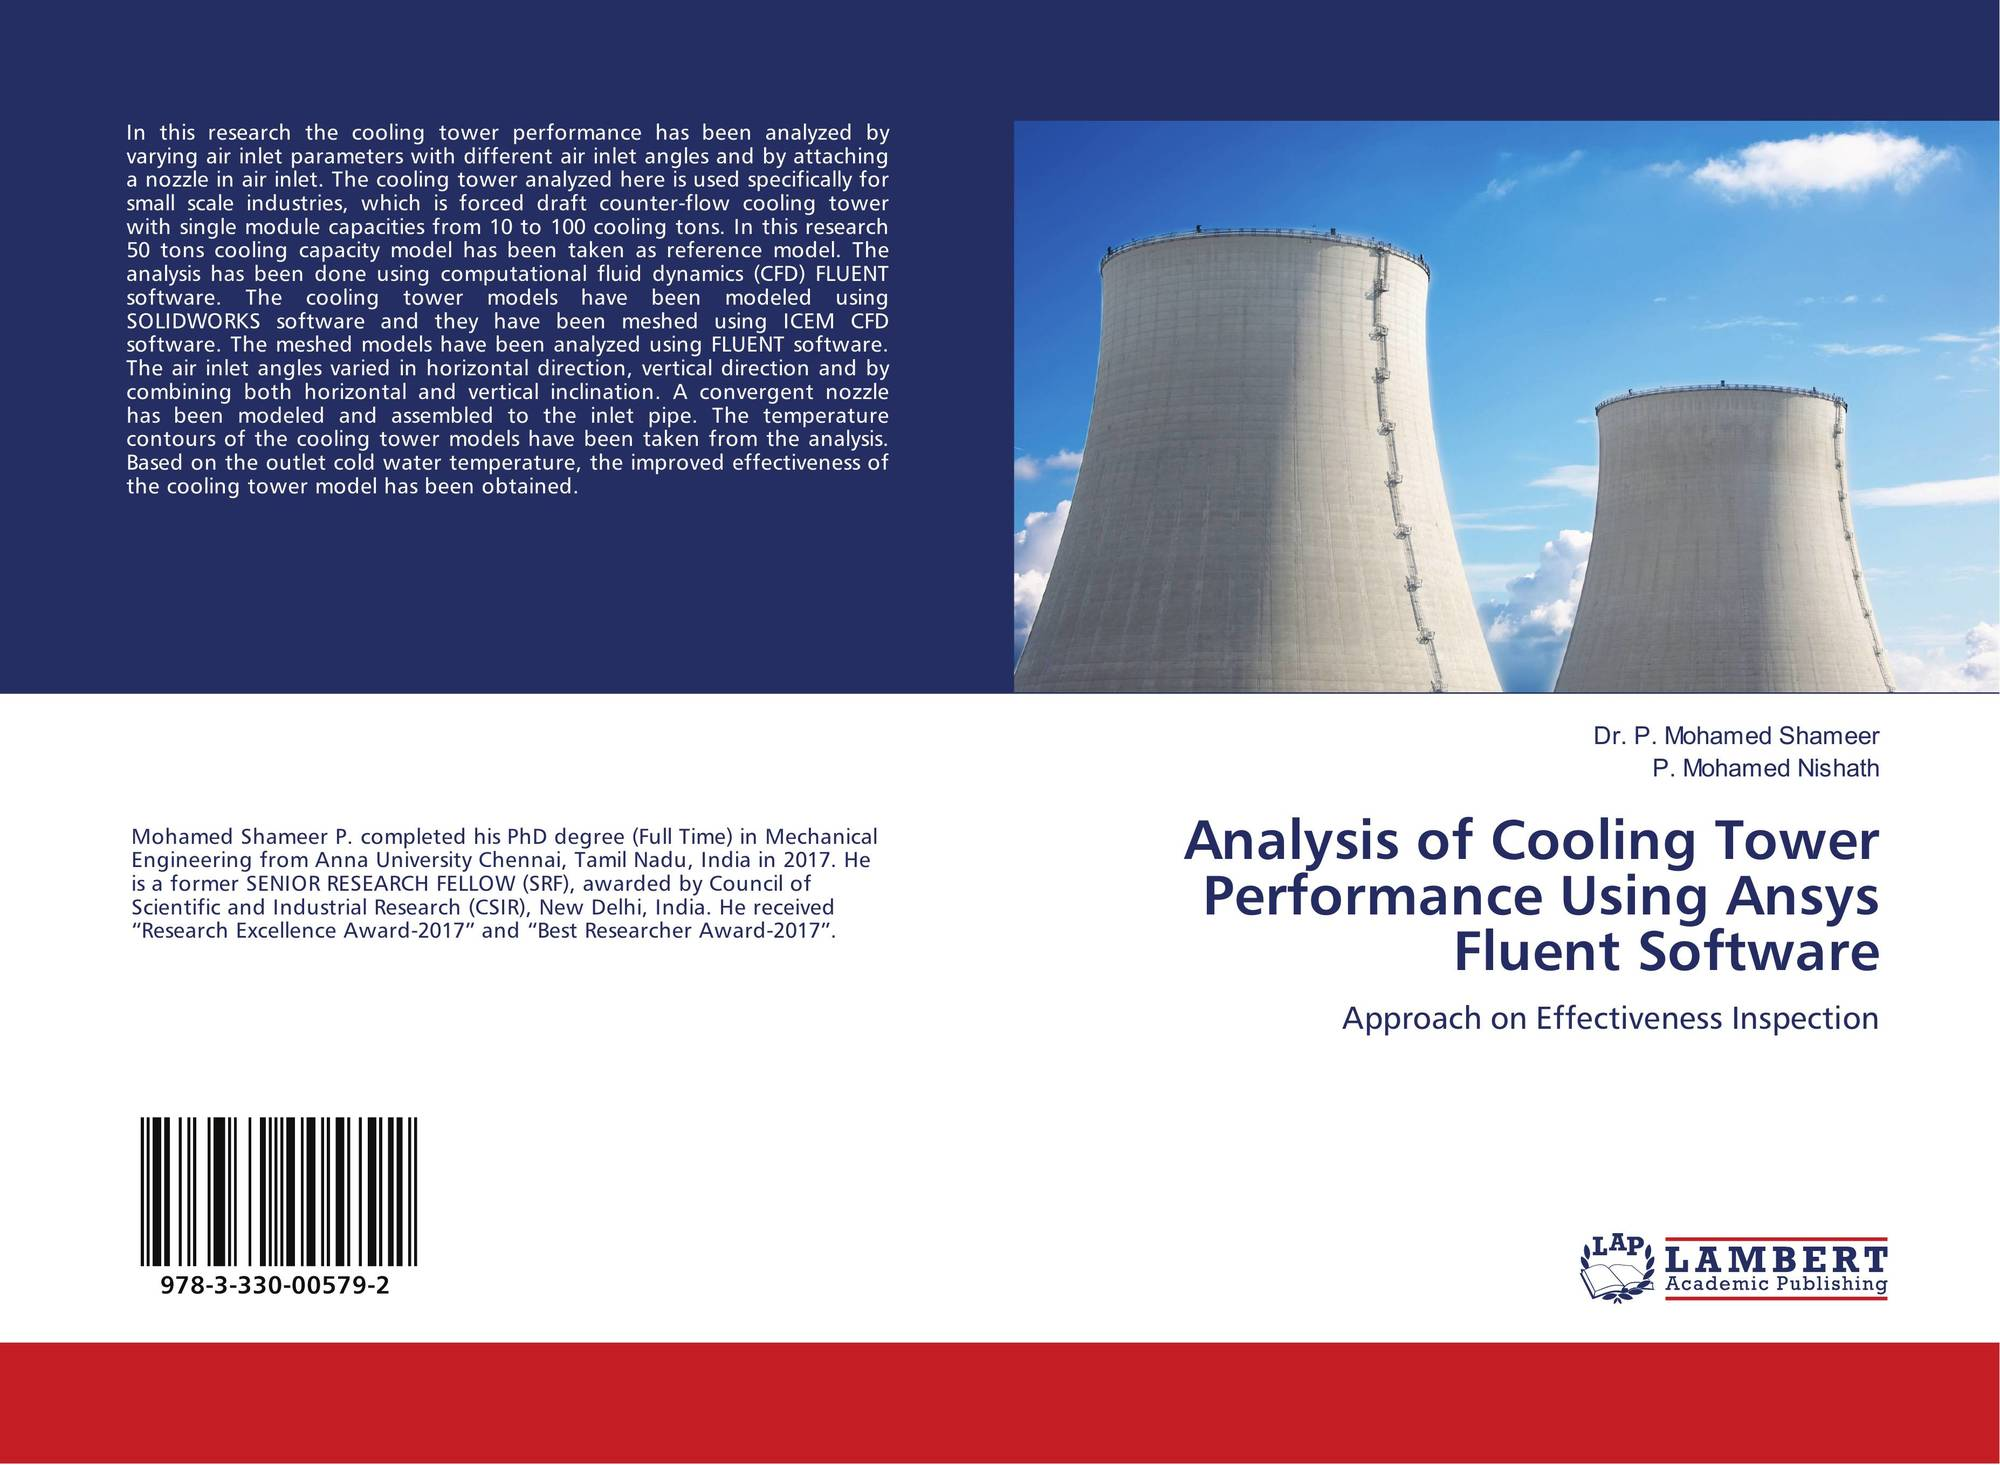 Analysis of Cooling Tower Performance Using Ansys Fluent Software